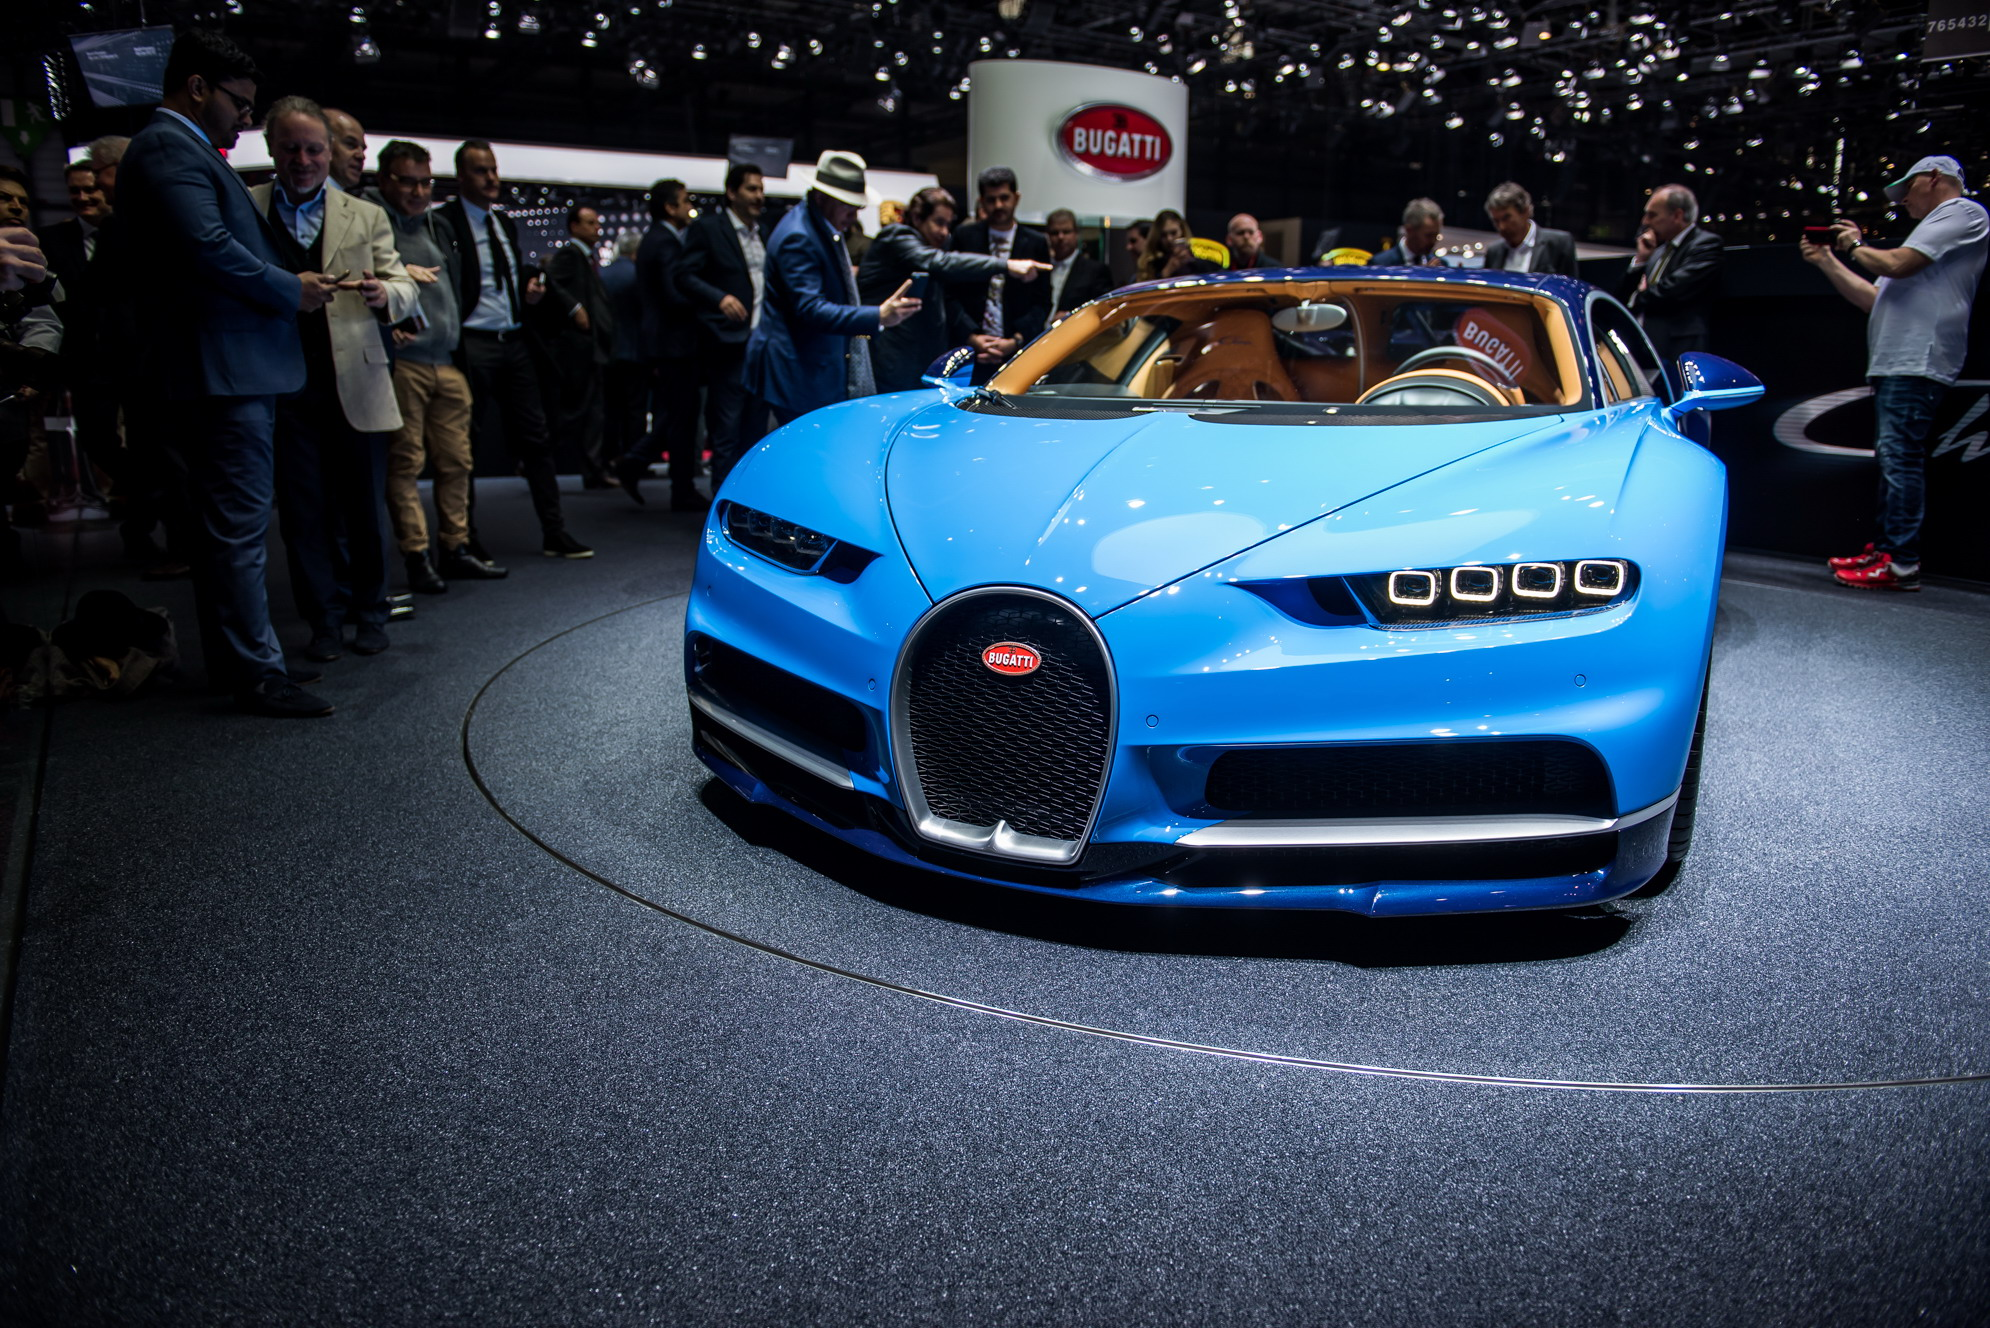 Fastest Car In The World 2015 >> 2018 Bugatti Chiron Review - Top Speed